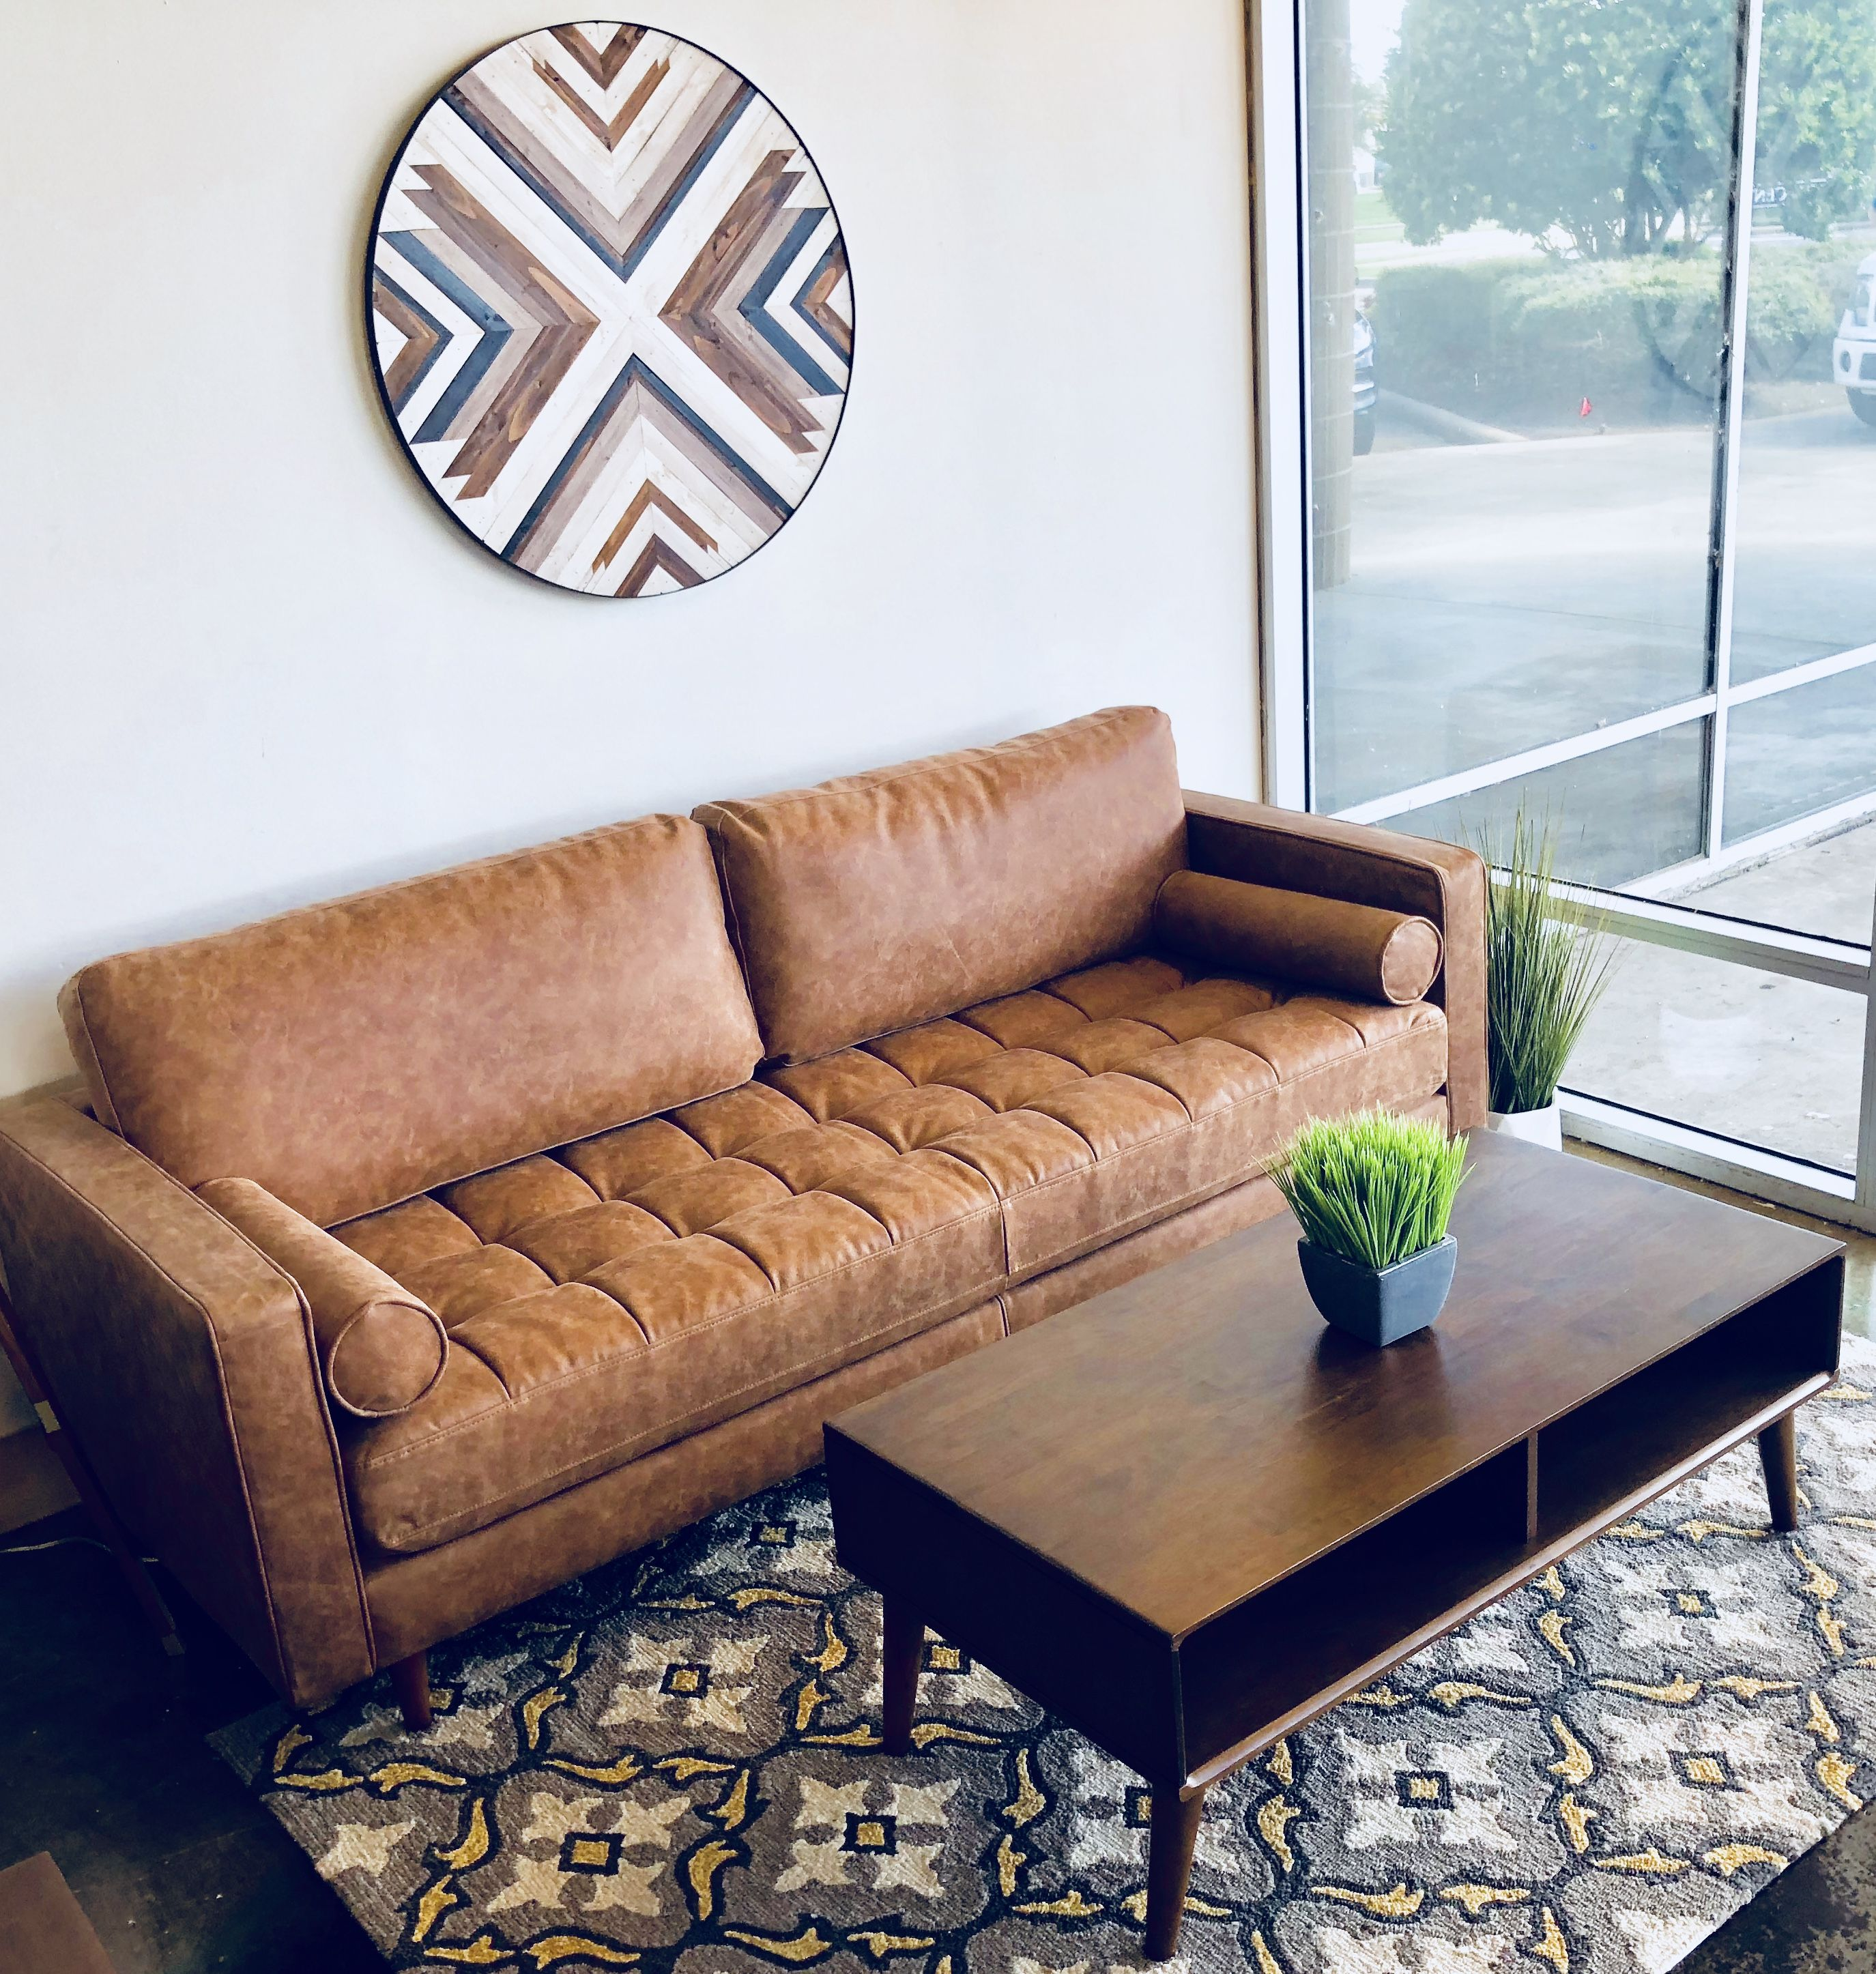 Mid Century Modern Leather Sofa In Katy Texas By Midinmod Furniture Stores In Houston Modern Furniture Stores Houston Furniture Mid Century Modern Furniture